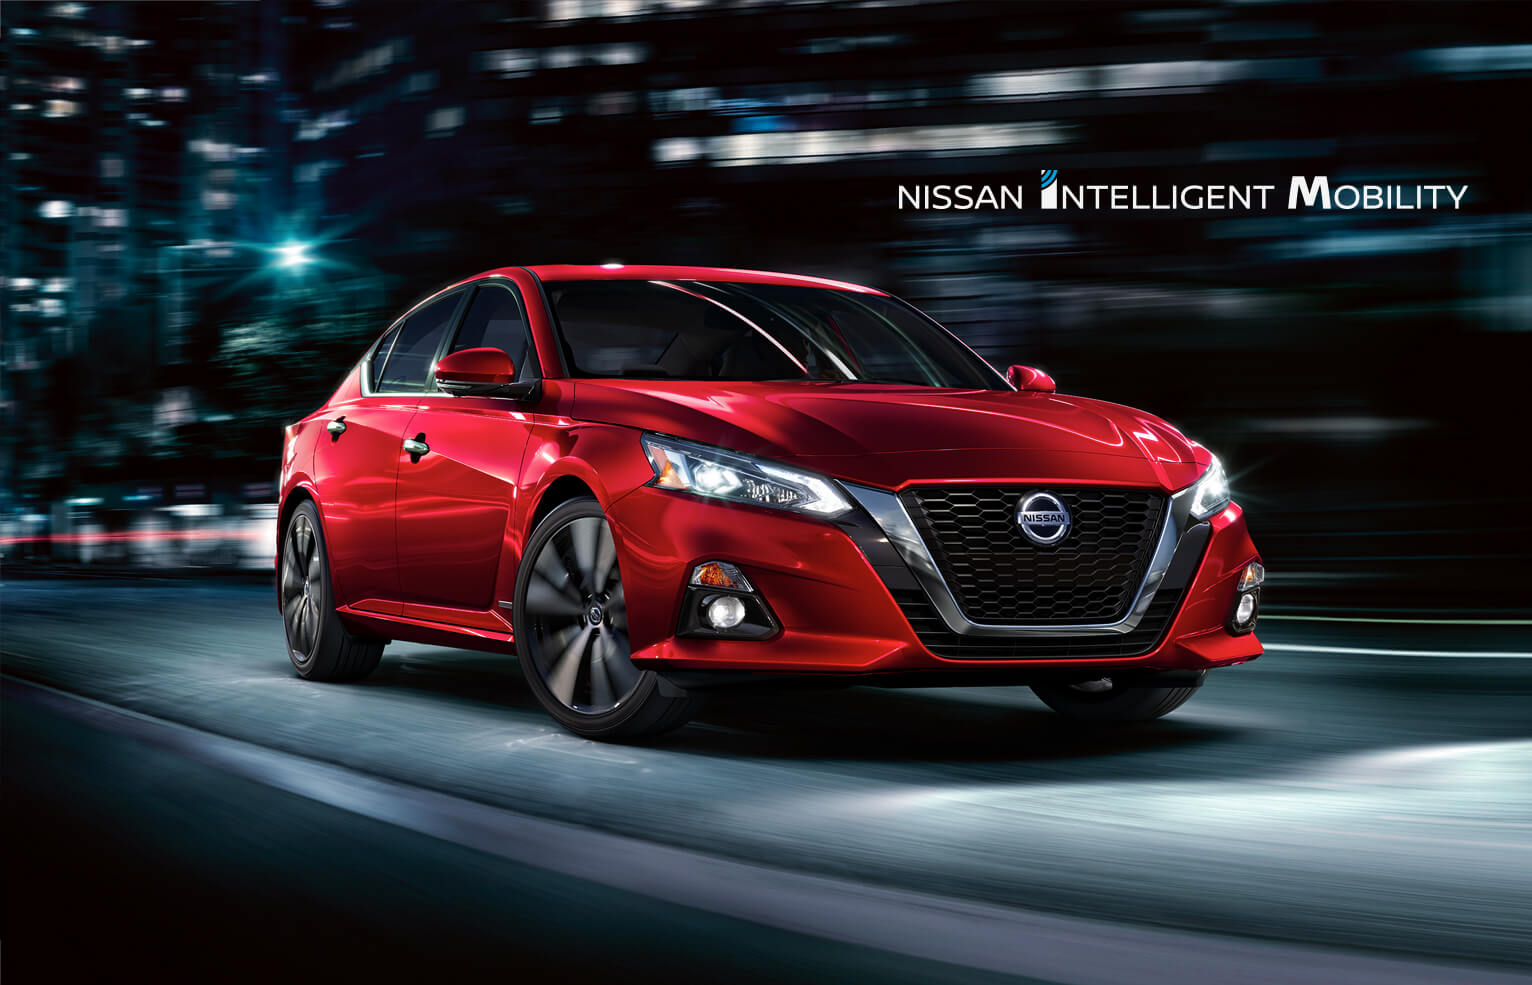 2019-nissan-images-altima-awd-sedan-mobile